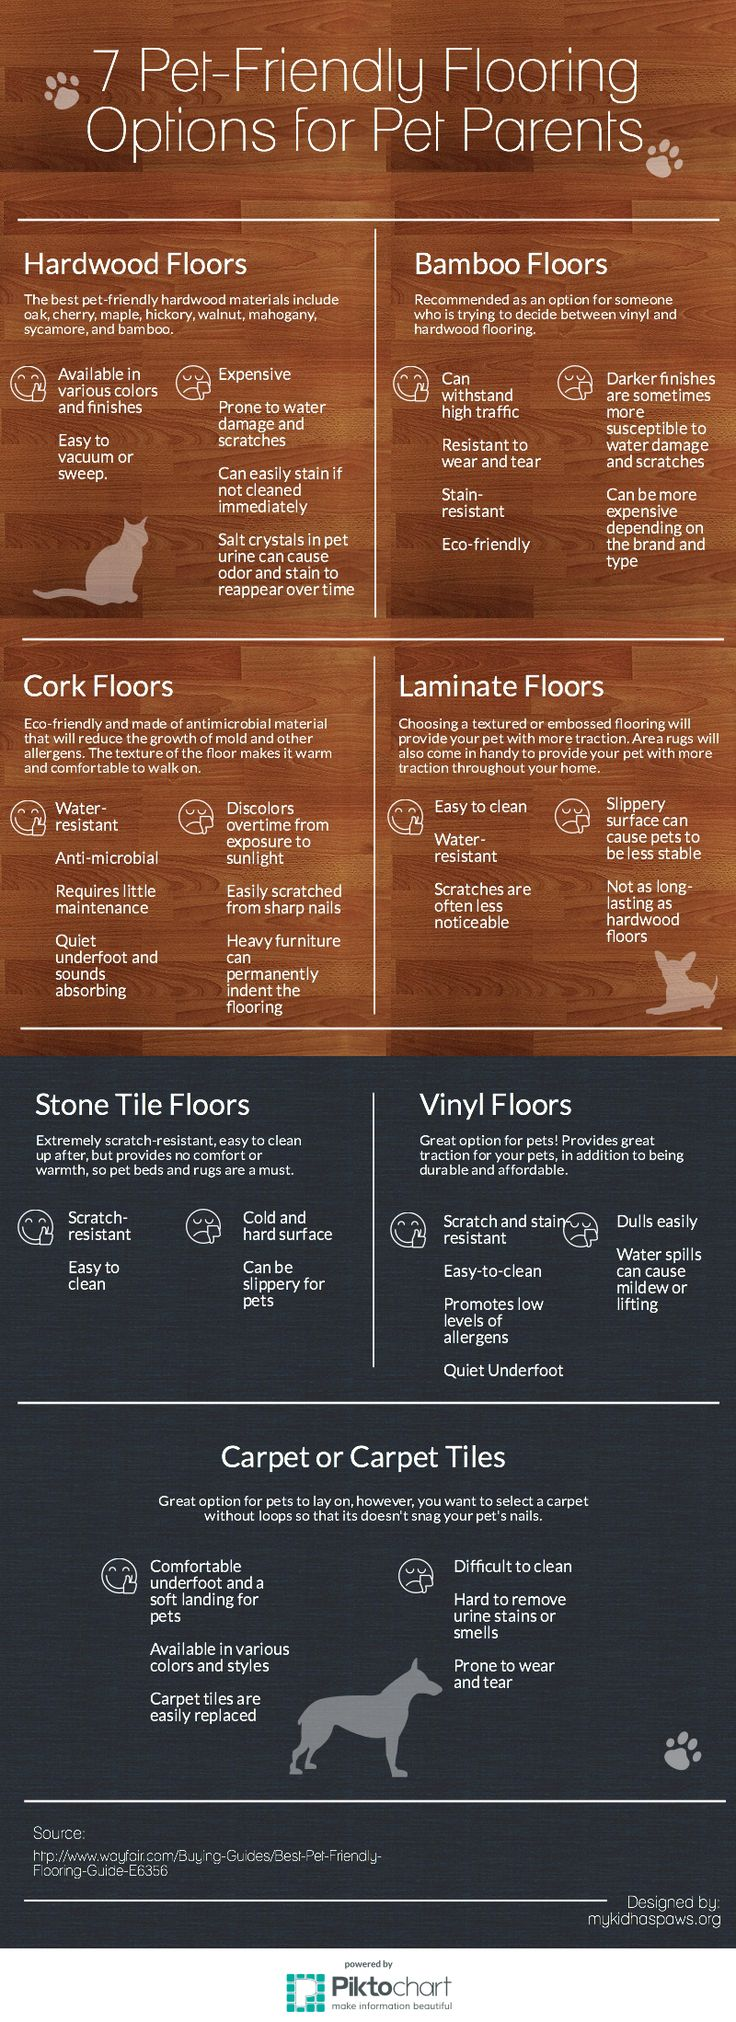 412 best flooring images on pinterest home ideas tiles for Dog friendly flooring ideas